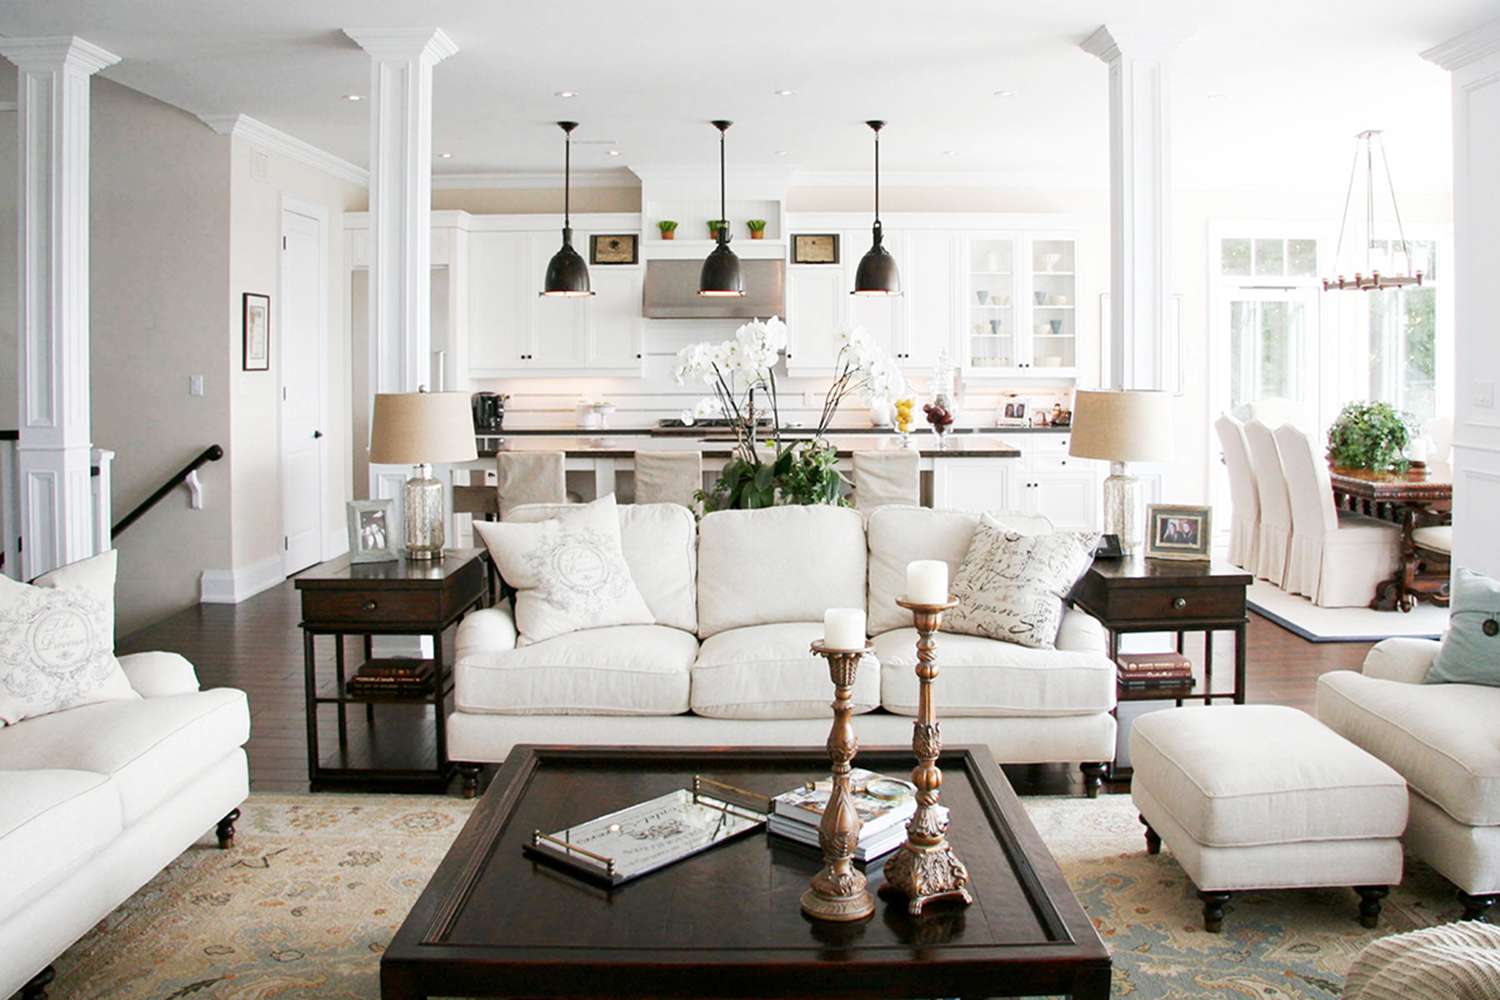 6 Design Tips For An Open Floor Plan Home Design Kathy Kuo Blog Kathy Kuo Home